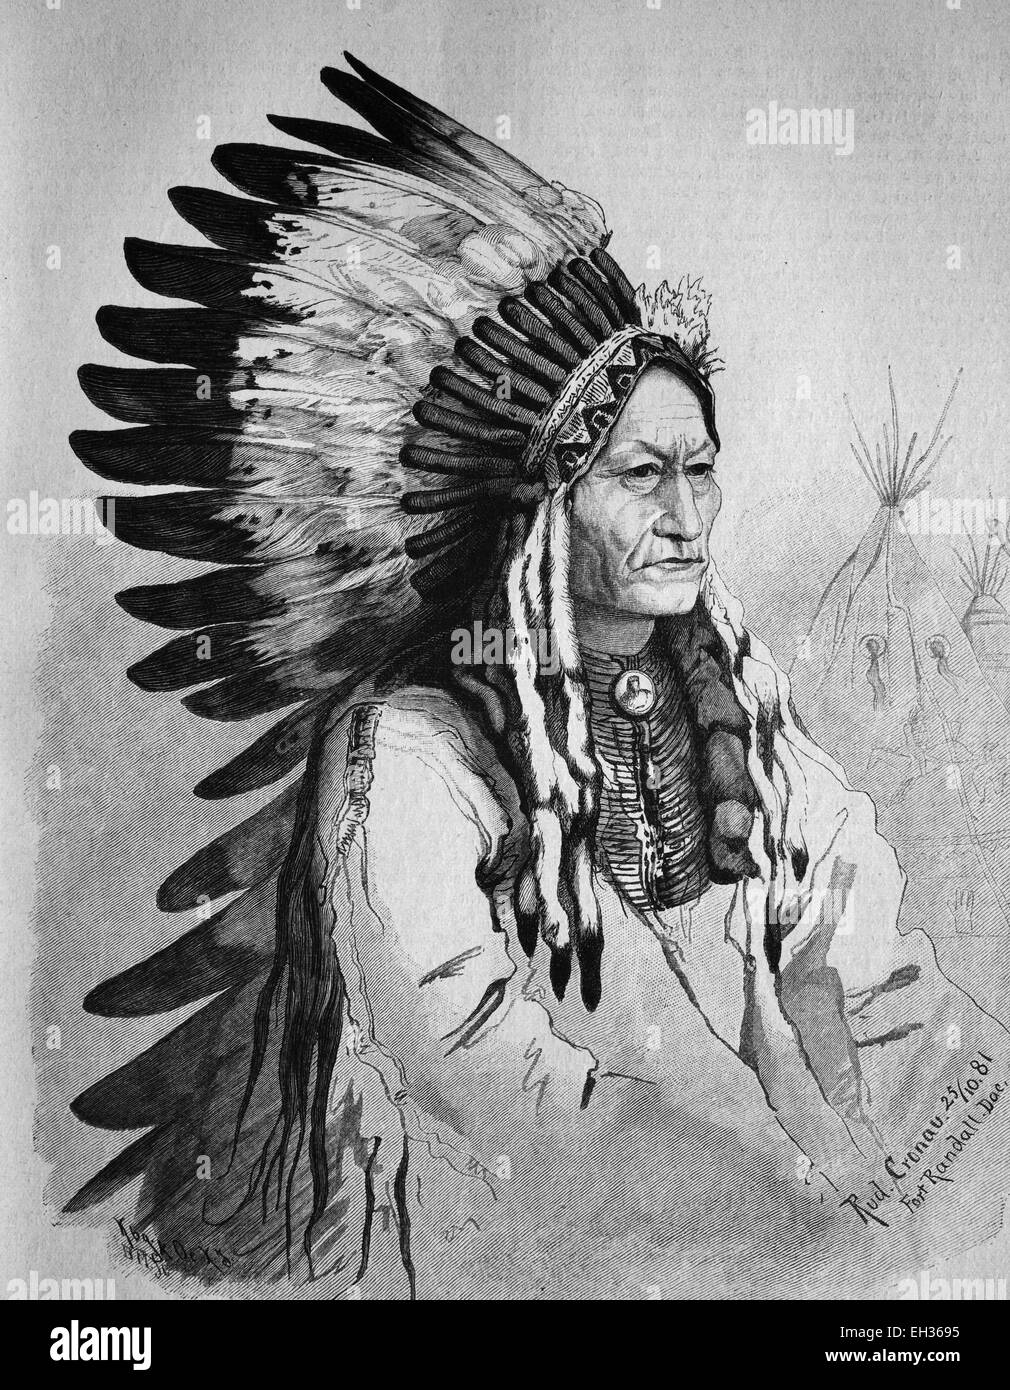 Sitting Bull, 1831-1890, one of the leaders during the last liberation movement of the Native Americans 1866-1876, - Stock Image